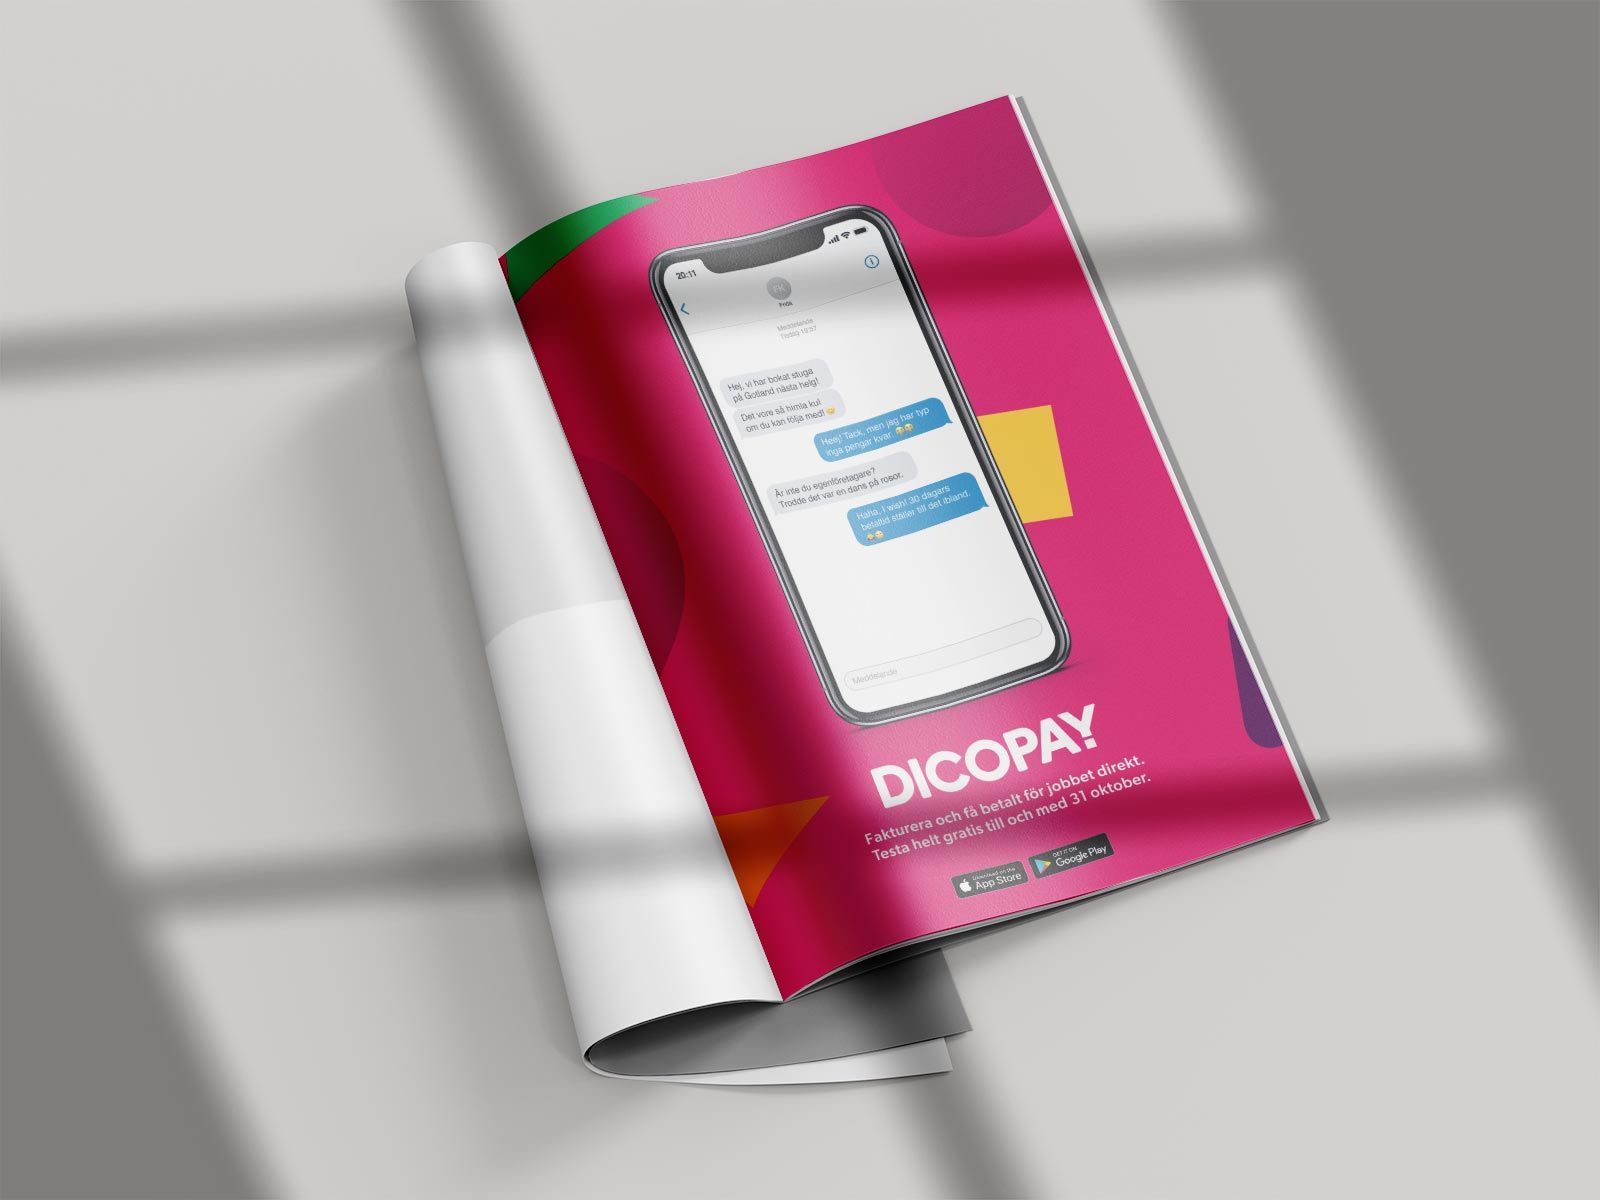 newspaper laying on flat surface showing a fullpage advertisement for dicopay.